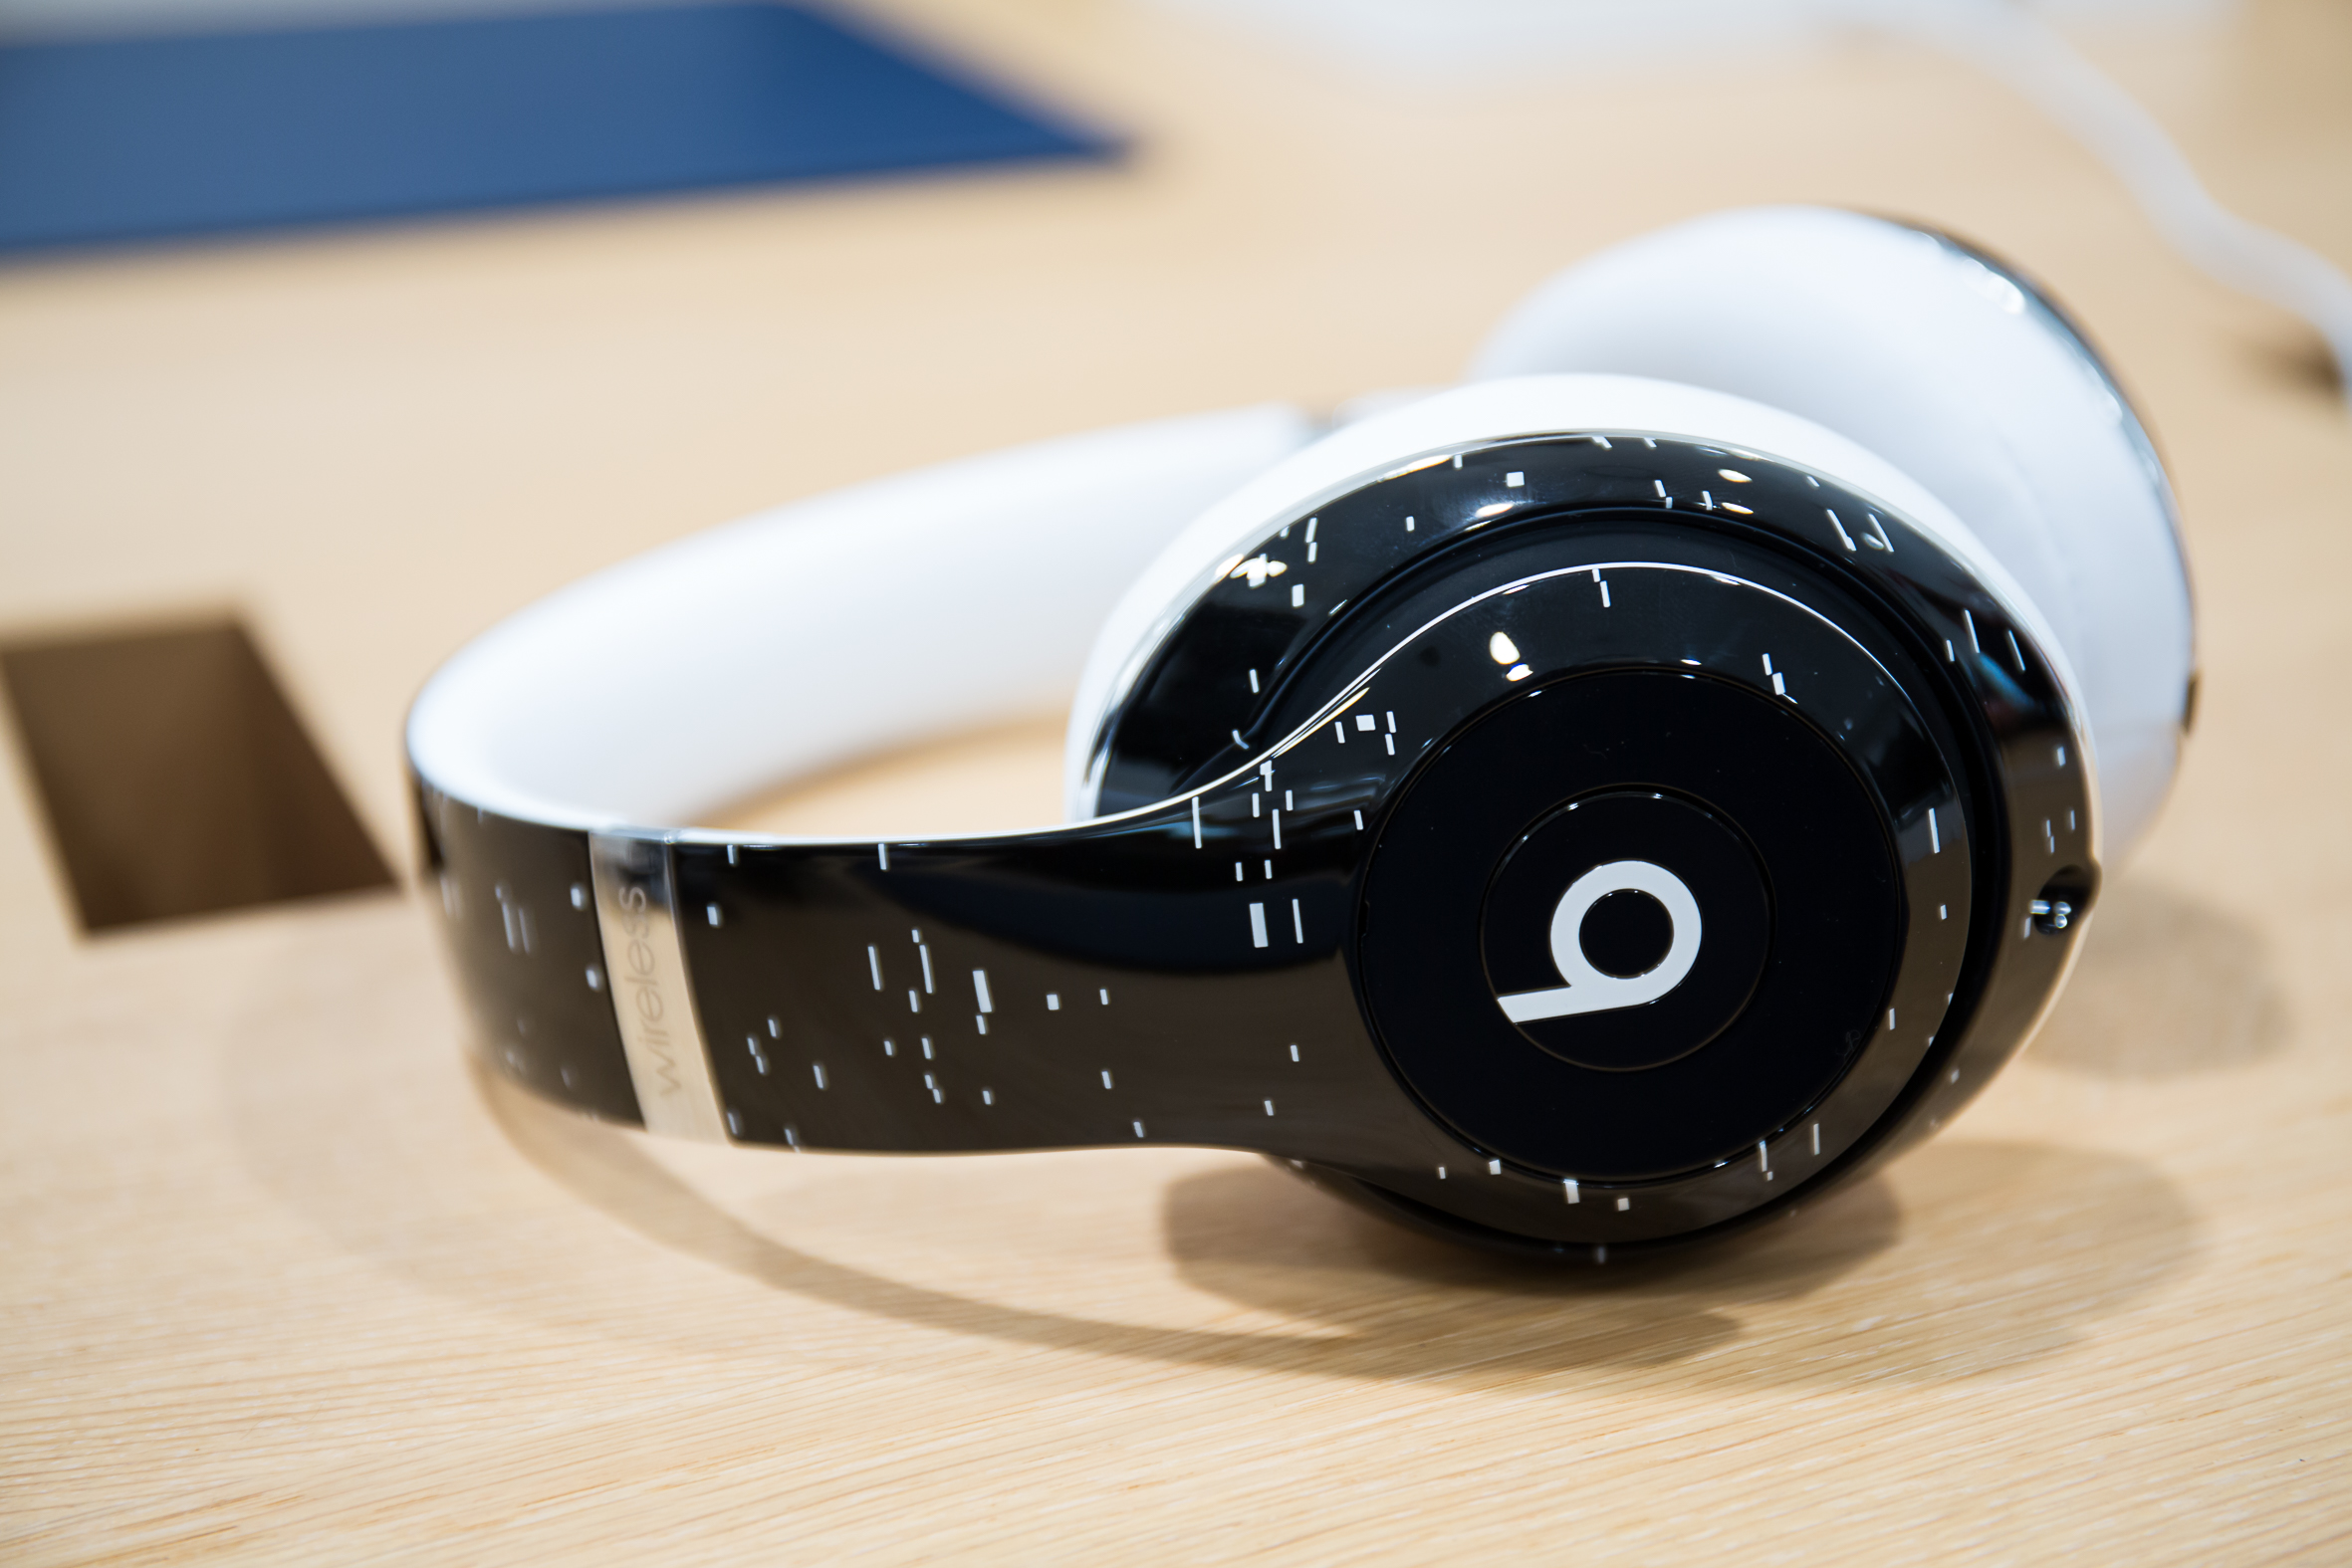 Beats by Apple launch event   event design & production (Project page coming soon!)